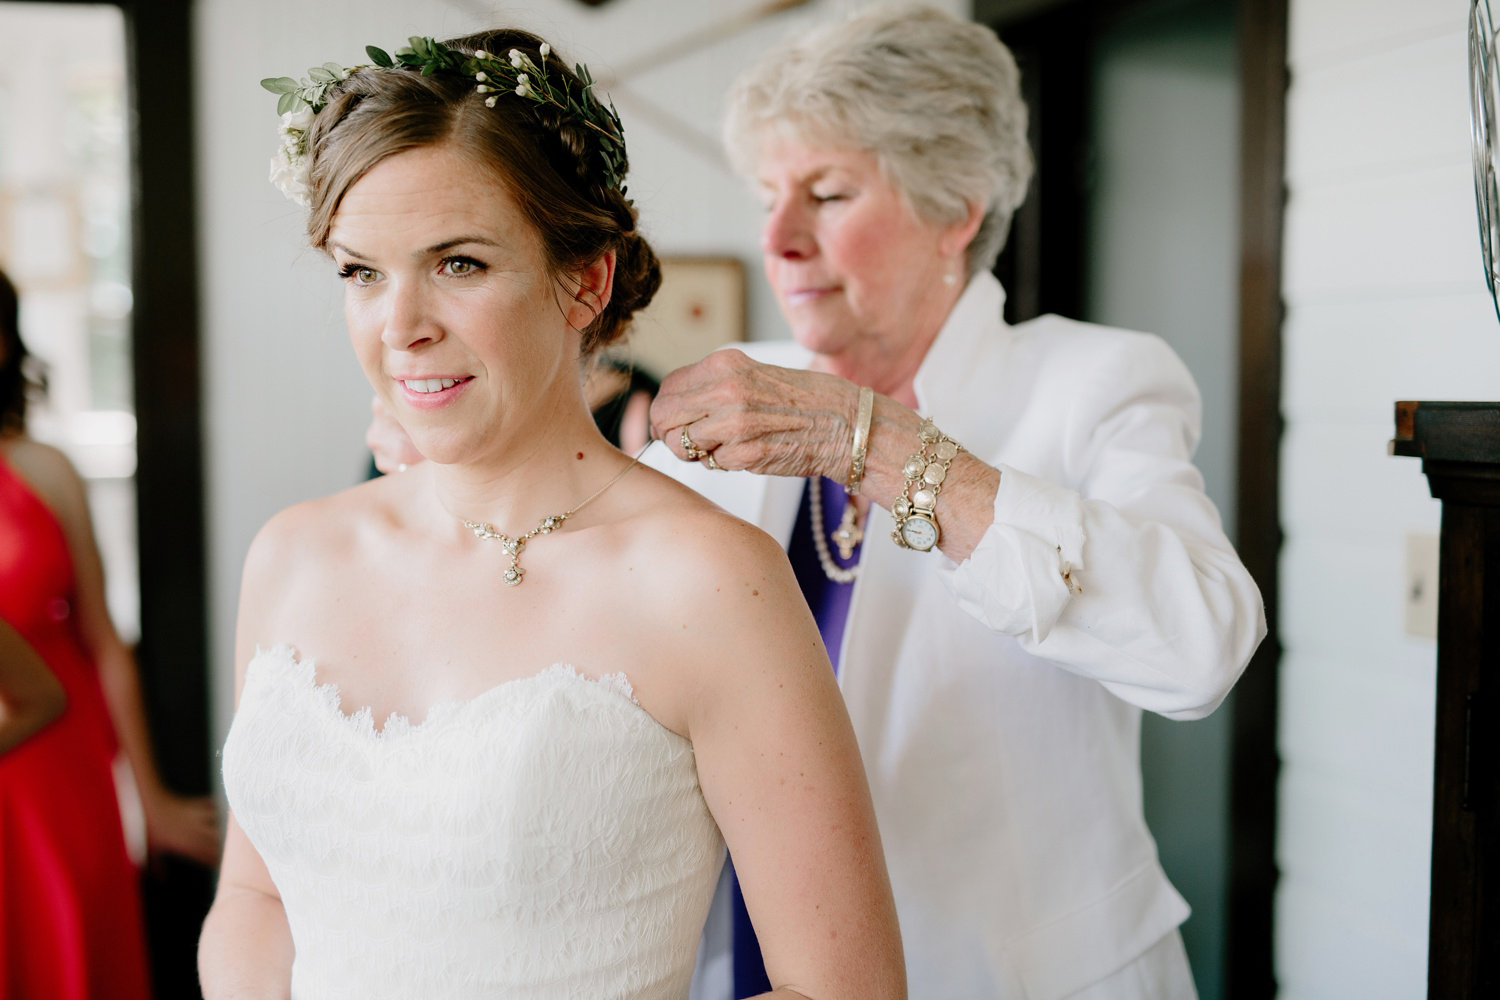 friend of the bride putting on necklace